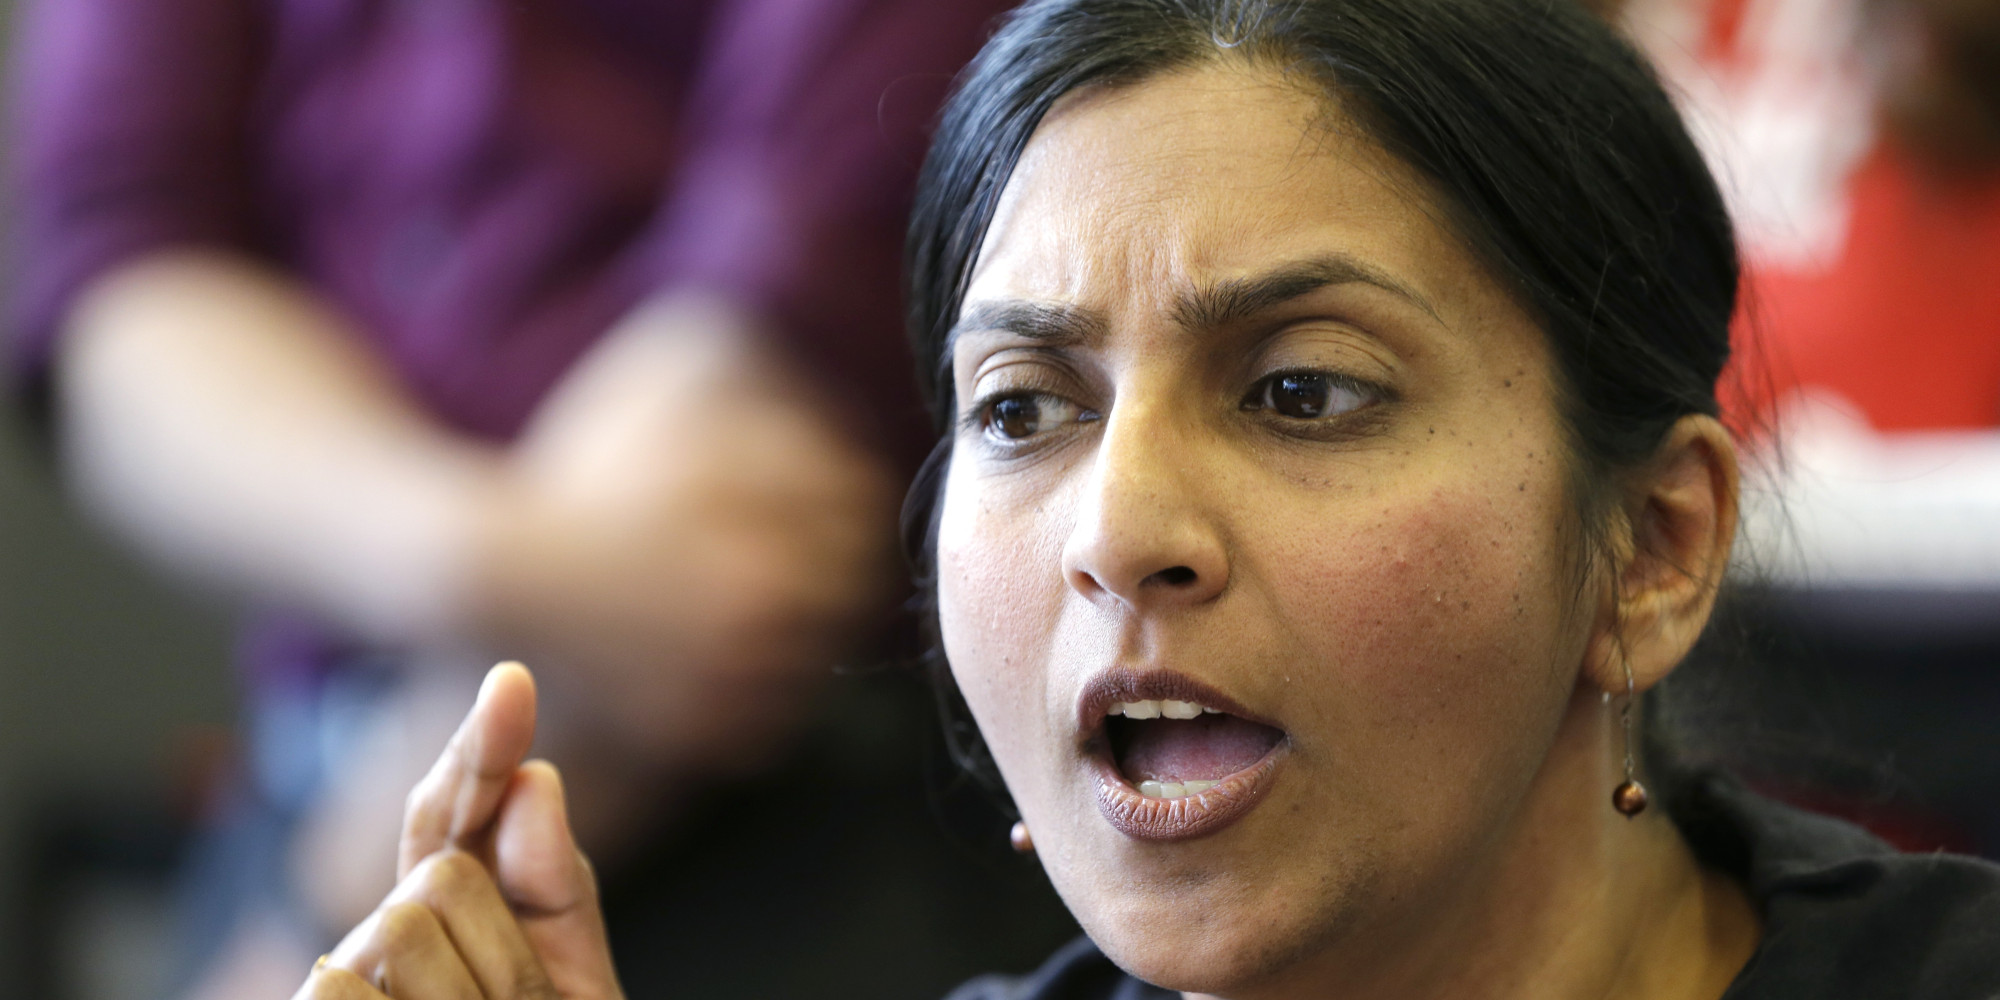 FILE -- In this April 24, 2014, file photo, Seattle City Council Member Kshama Sawant addresses a news conference on a proposal to increase the minimum wage in the city, in Seattle. Sawant said she'll join the May Day march Thursday, May 1, 2014, for immigrant and worker rights to promote her campaign for a $15 minimum wage. May Day has turned violent recently in Seattle, where last year police arrested 18 people from a crowd that pelted them with rocks and bottles. A year earlier masked marchers dressed in black broke windows and doors on downtown banks and stores and tried to set a fire at a federal building. (AP Photo/Elaine Thompson, File)